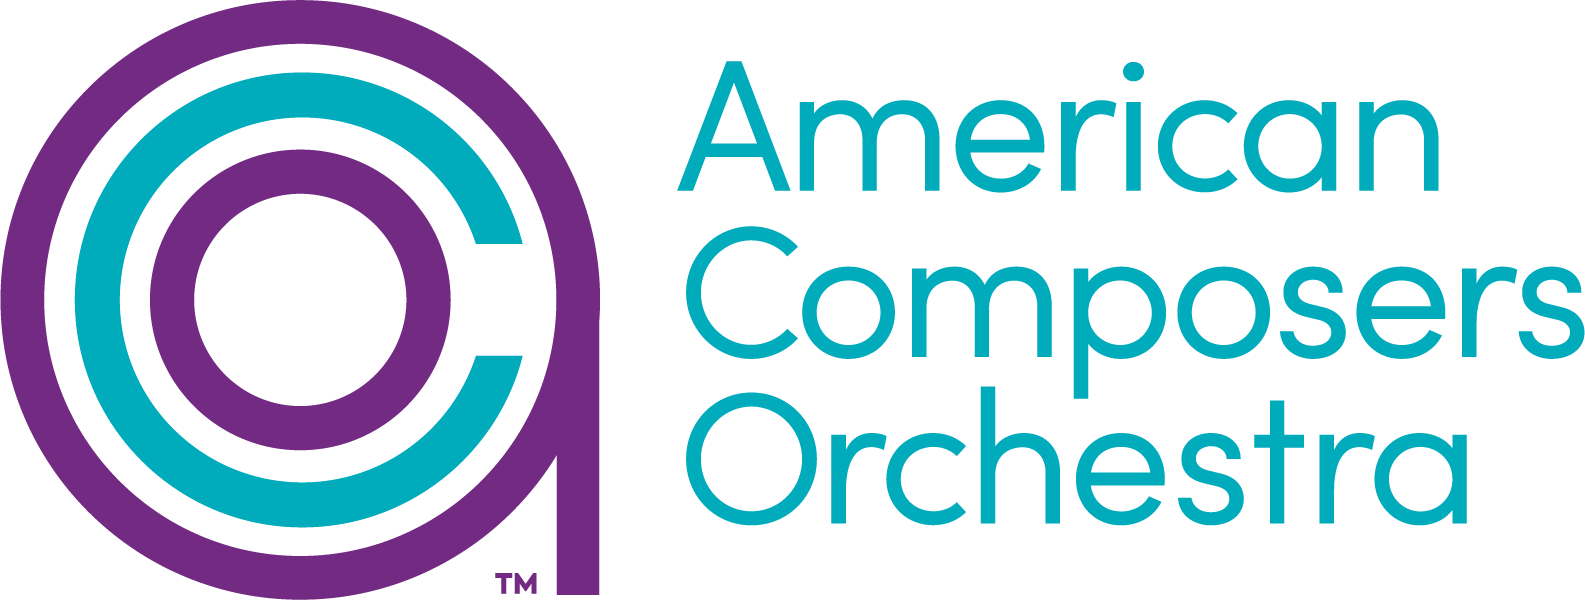 American Composers Orchestra image